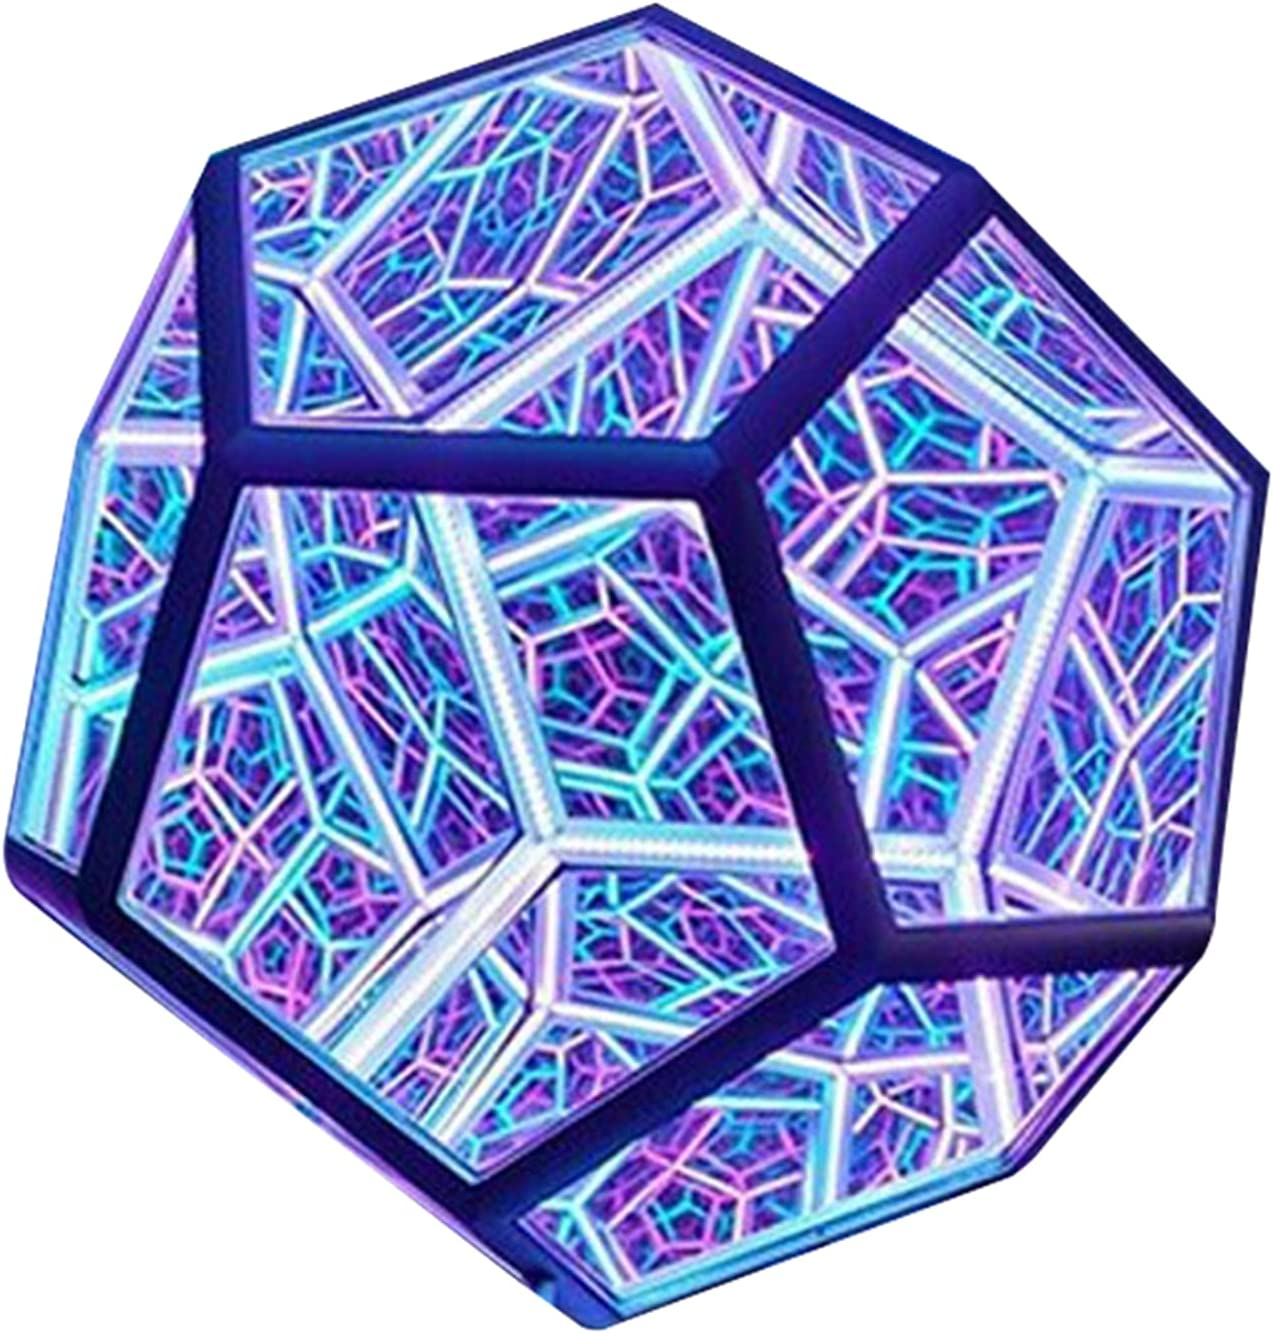 VELIHOME Infinite Dodecahedron quality assurance Color Houston Mall Art N Decorative Light Lamp